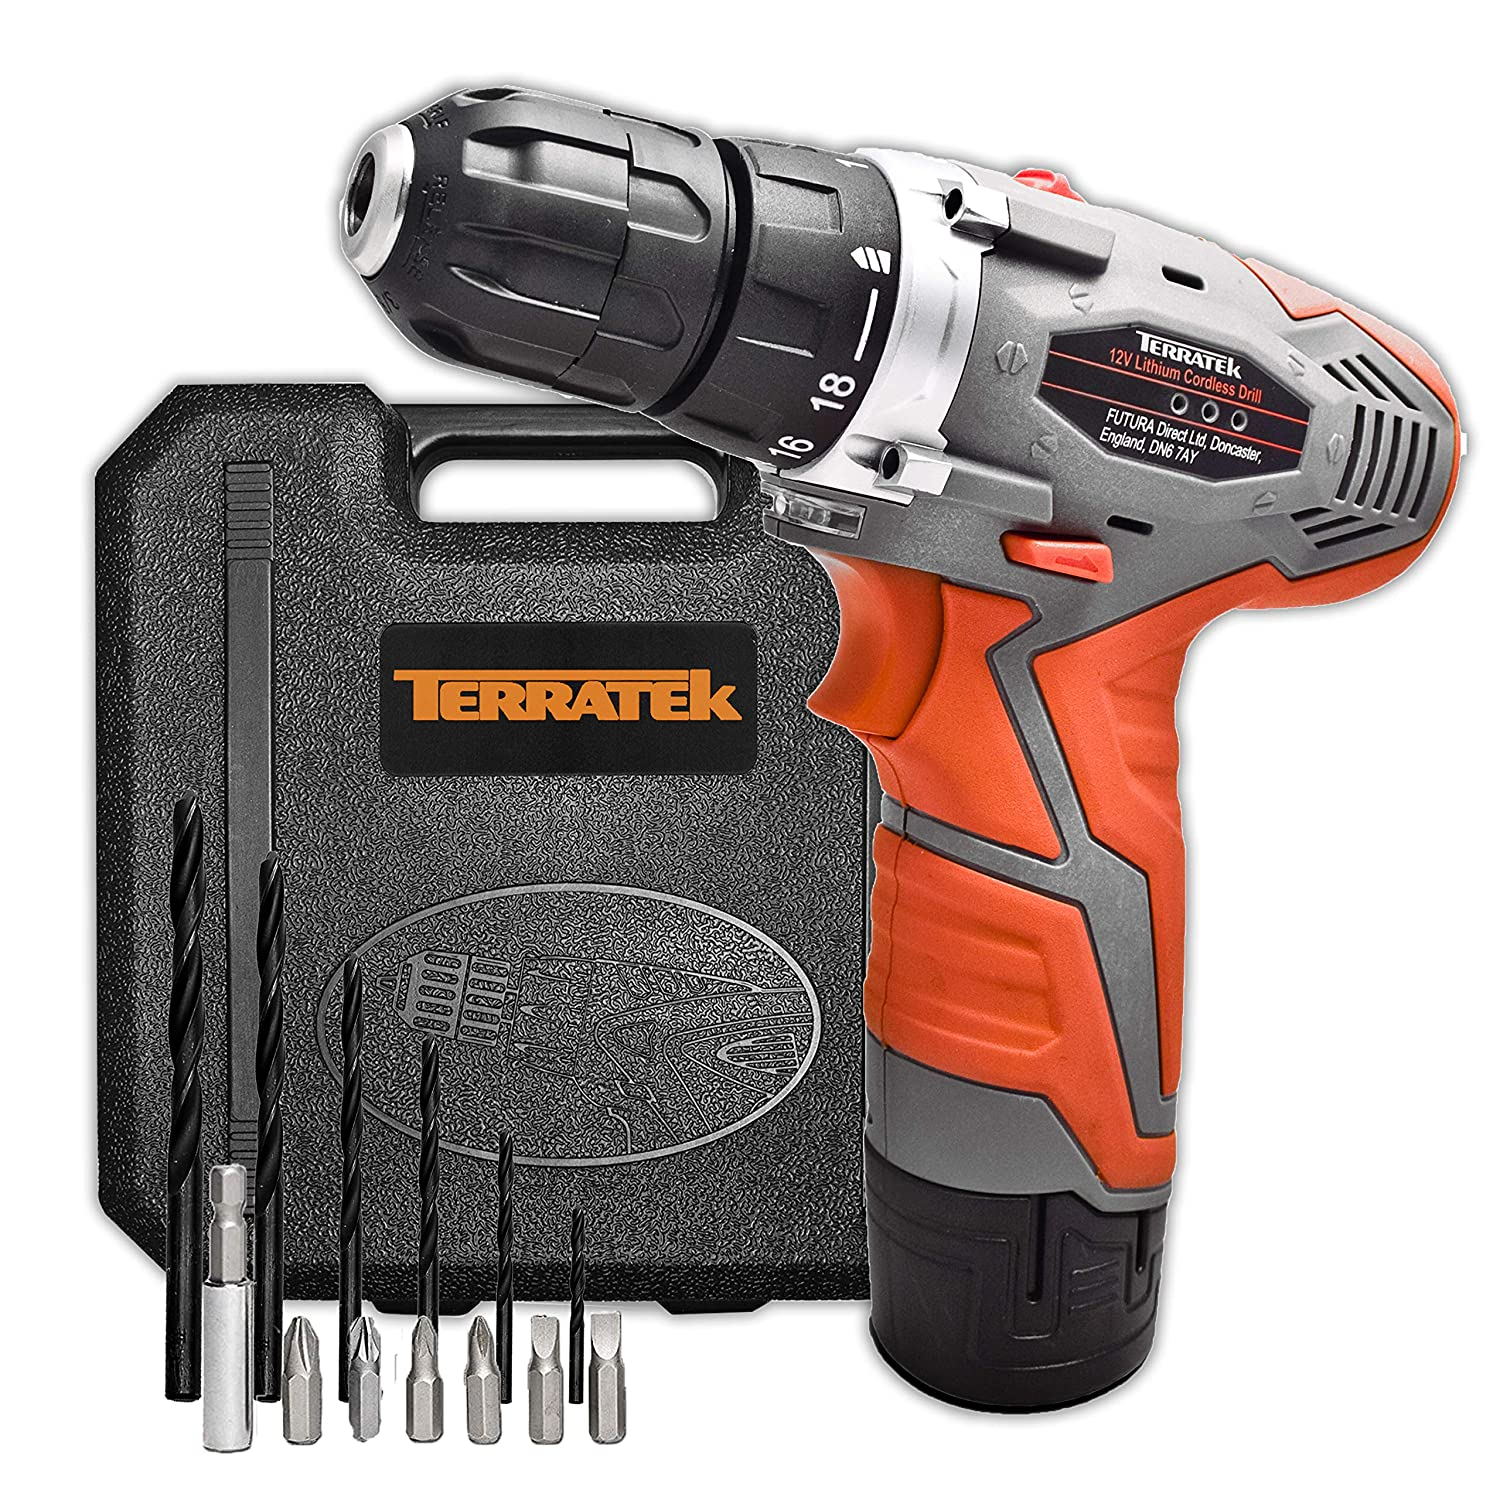 Terratek Genuine 12V Cordless Drill Driver Lithium-Ion Combi Drill, Electric Screwdriver, Variable Speed, Max Torque: 25N.m, Carry Case & 13pc Accessory Kit Included T12V2SCD